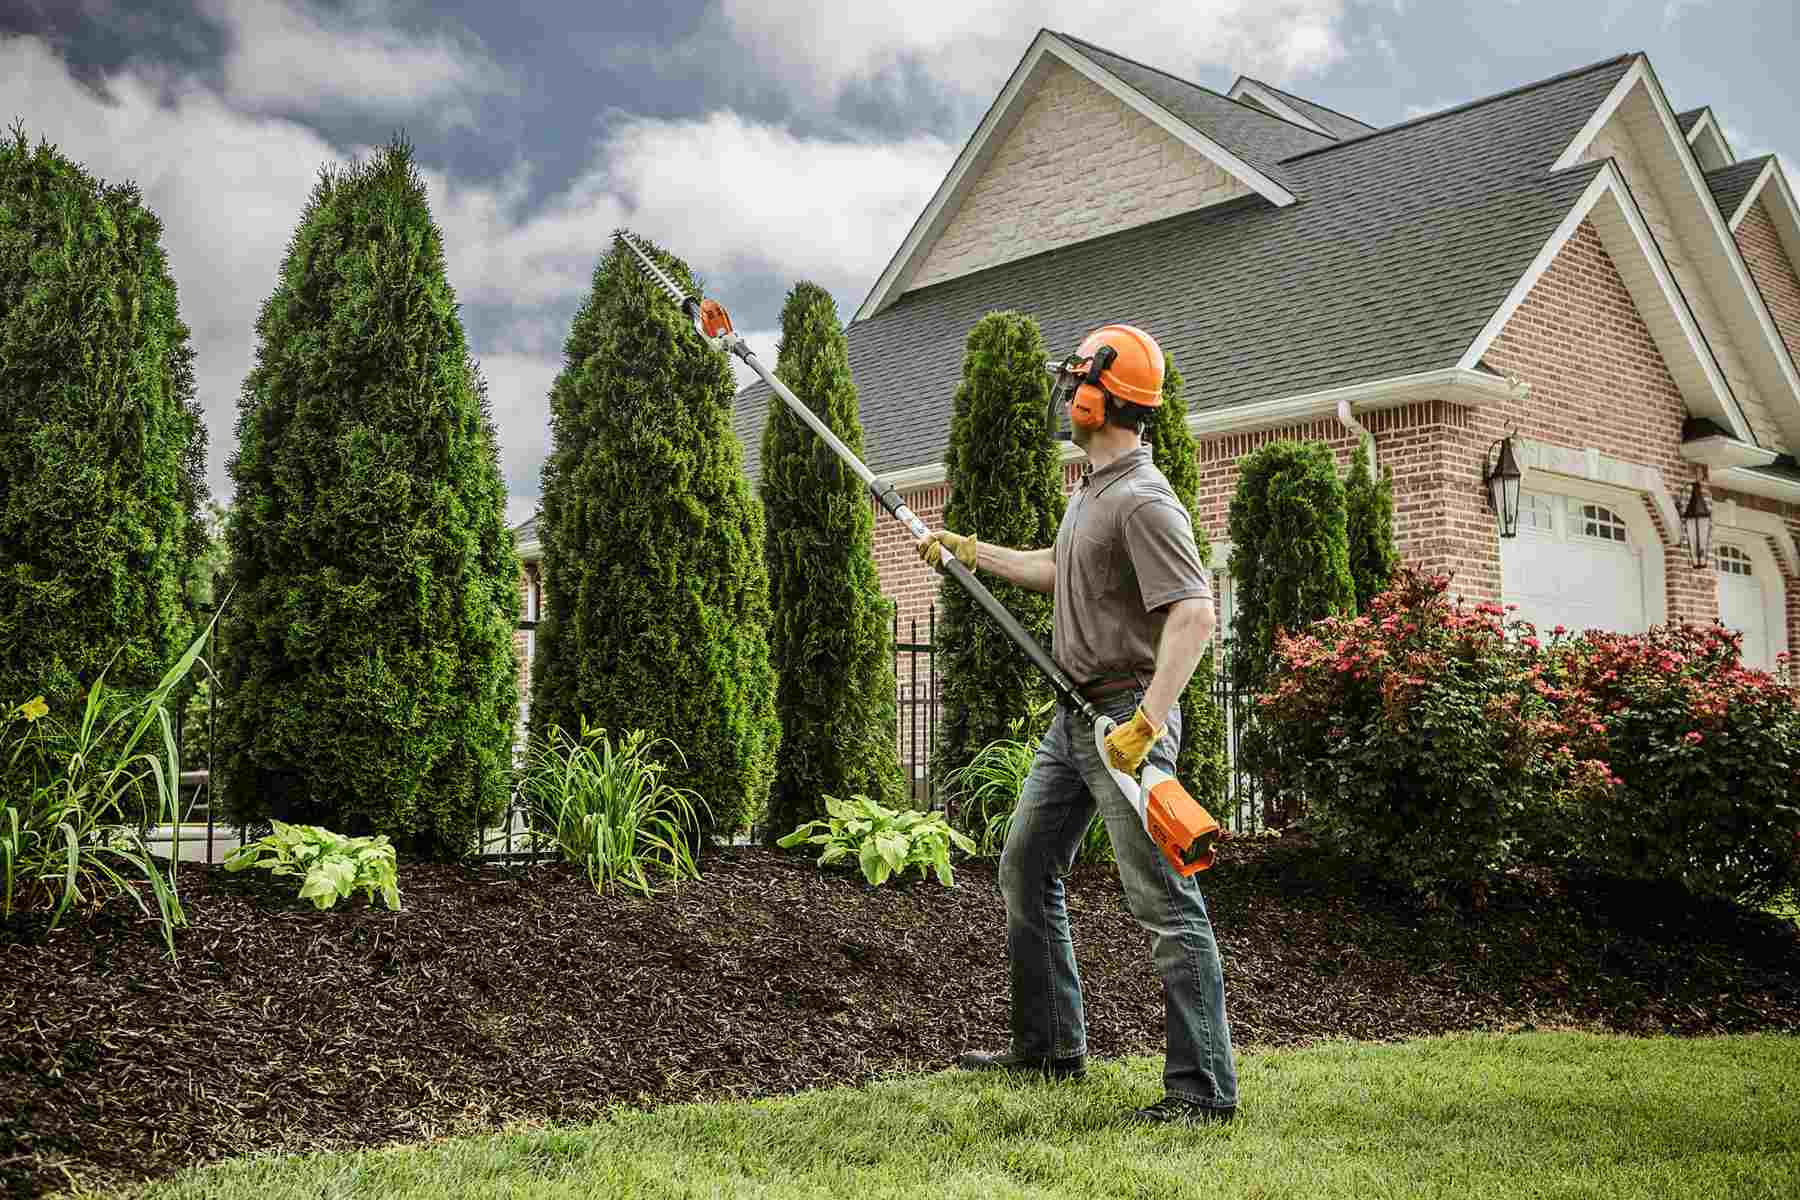 Summerfield-Greensboro Tree Trimming and Stump Grinding Services-We Offer Tree Trimming Services, Tree Removal, Tree Pruning, Tree Cutting, Residential and Commercial Tree Trimming Services, Storm Damage, Emergency Tree Removal, Land Clearing, Tree Companies, Tree Care Service, Stump Grinding, and we're the Best Tree Trimming Company Near You Guaranteed!